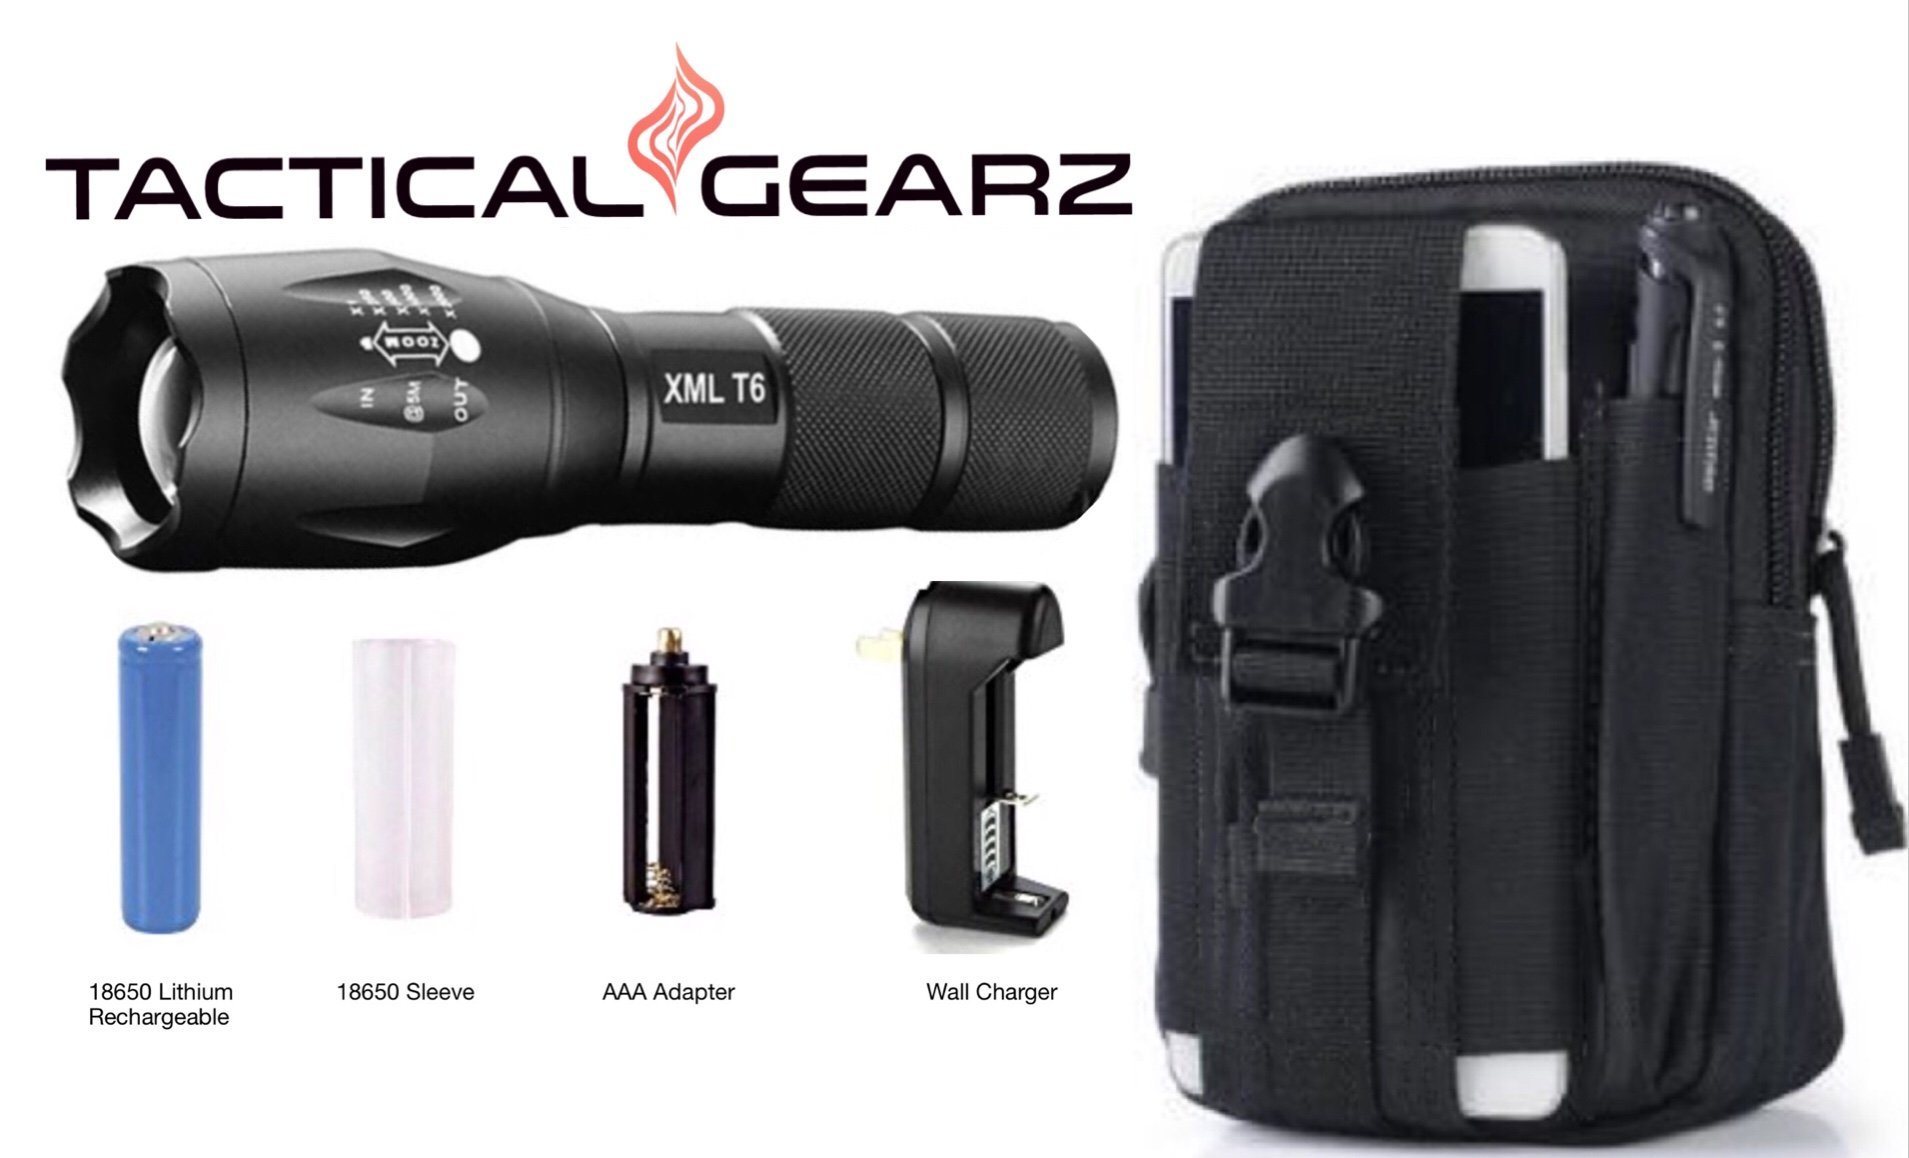 TacticalGearz LED Flashlight Bundle! High-Grade Military Aluminum! Super Bright 1000 Lumens T6 LED! Waterproof! Zoomable! 5 Power modes! Battery Kit! All nested in a Molle Pack!